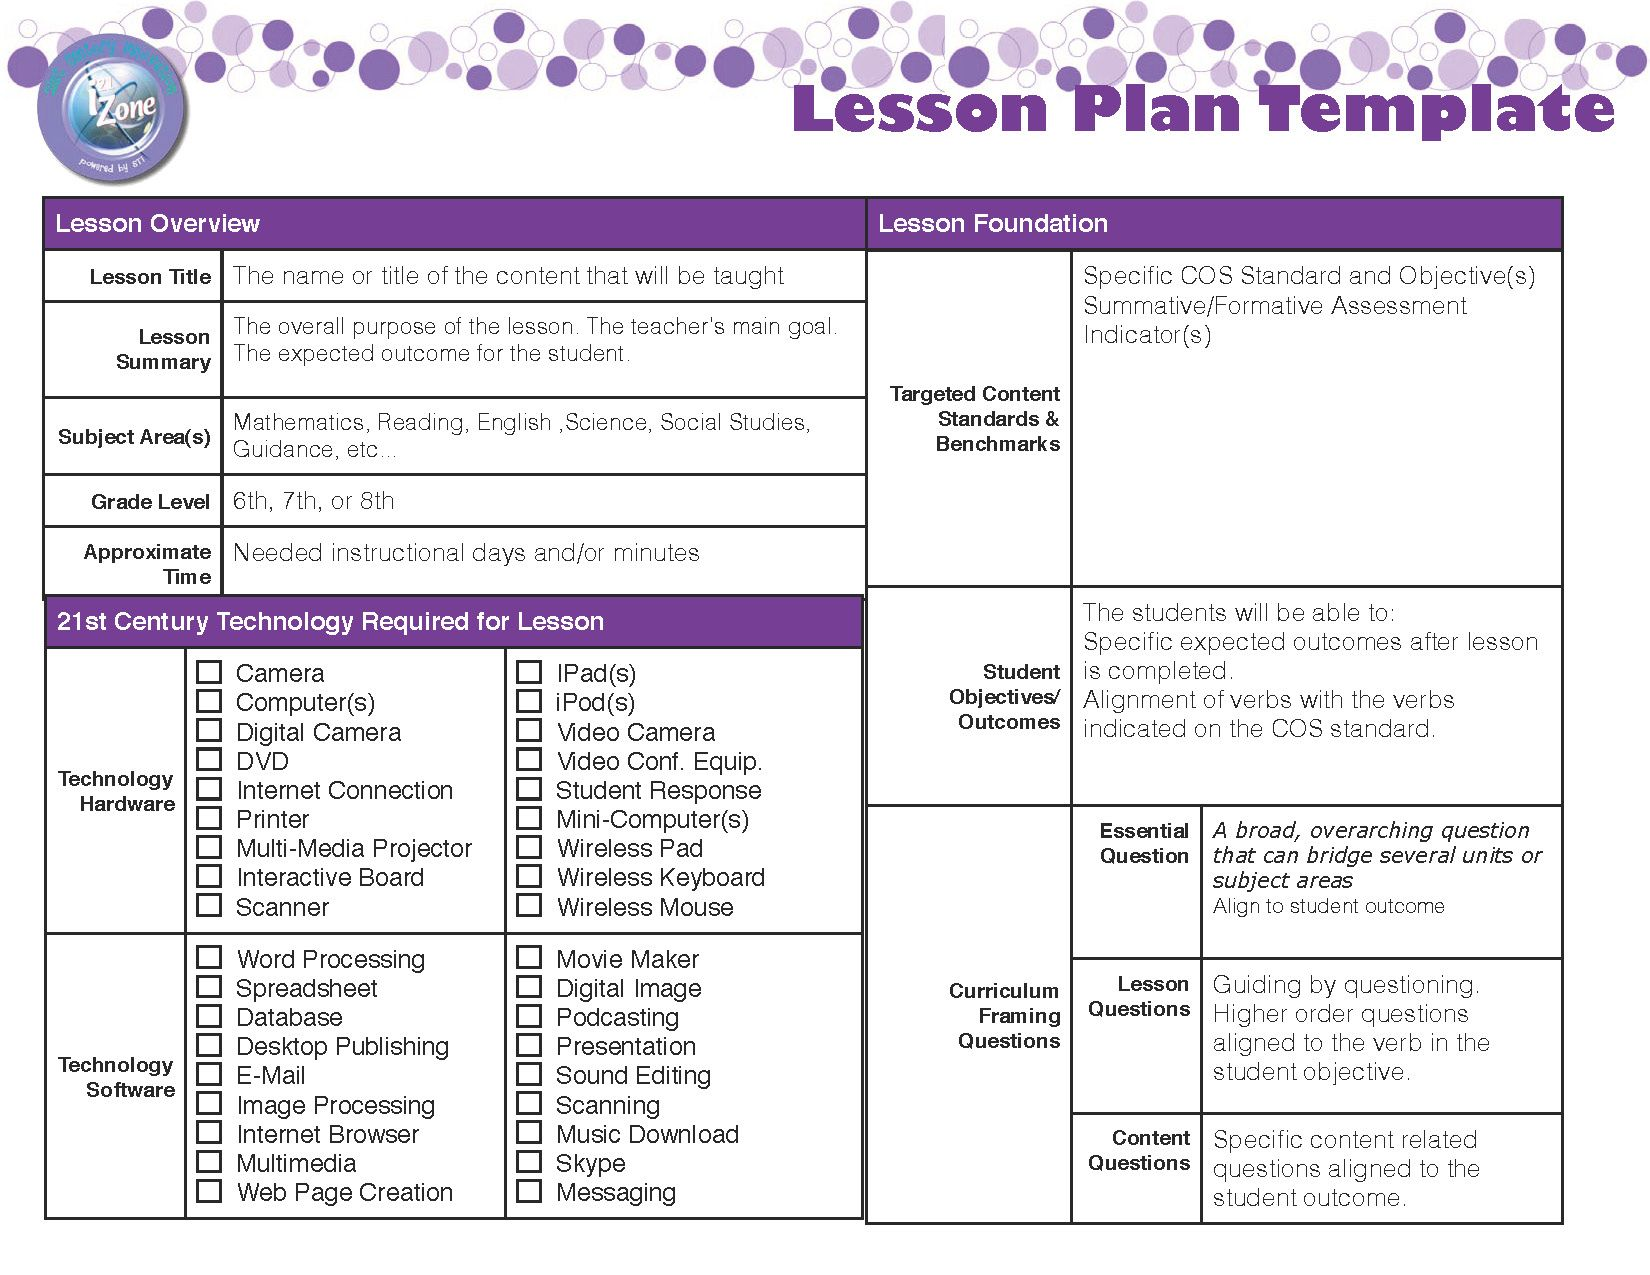 Lesson plan template unit plan lesson plan templates for Lesson preparation template